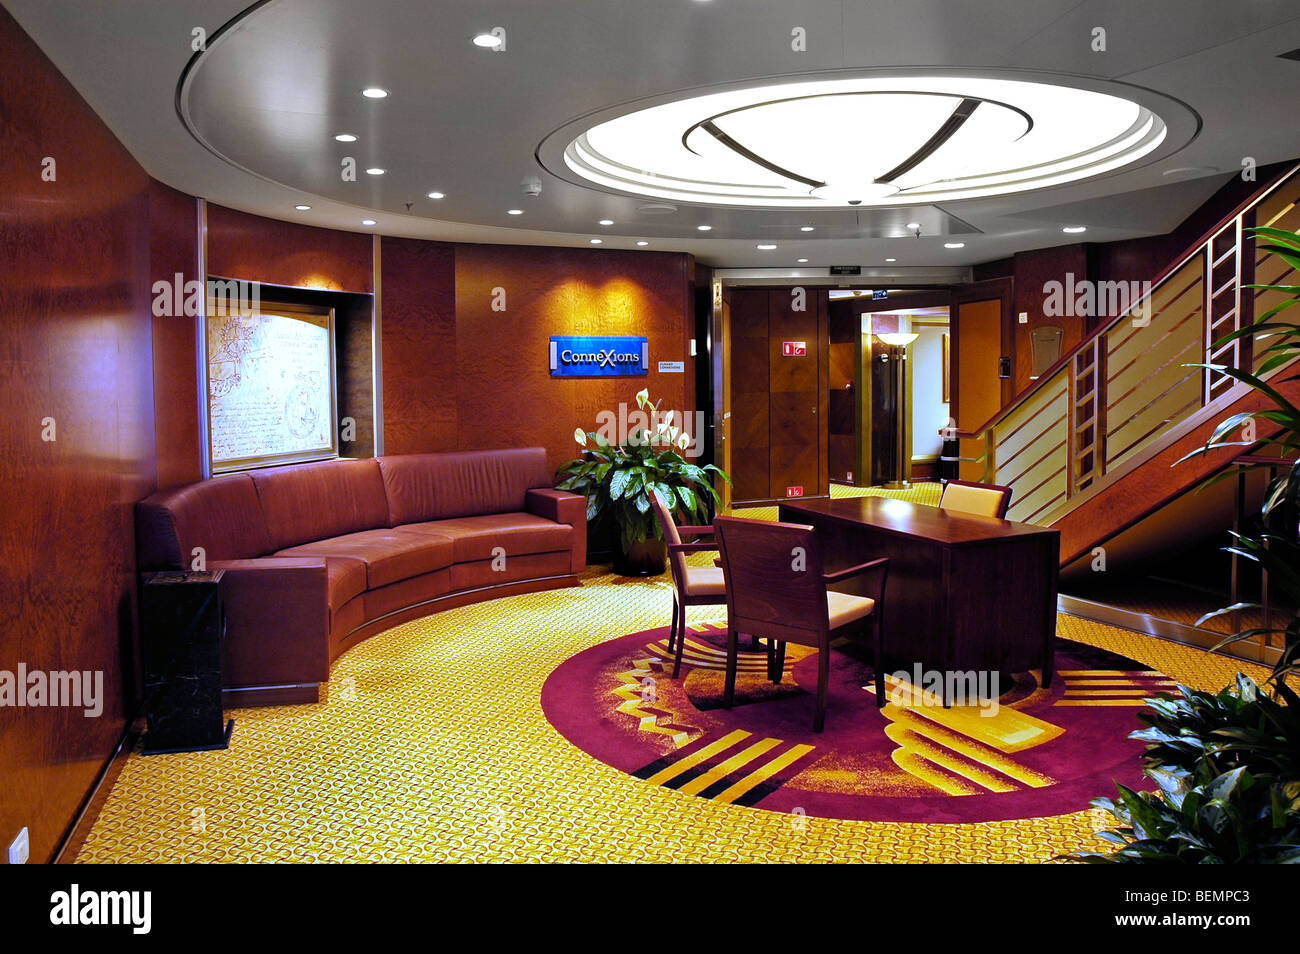 Connexions lounge, Queen Mary 2 cruise ship - Stock Image